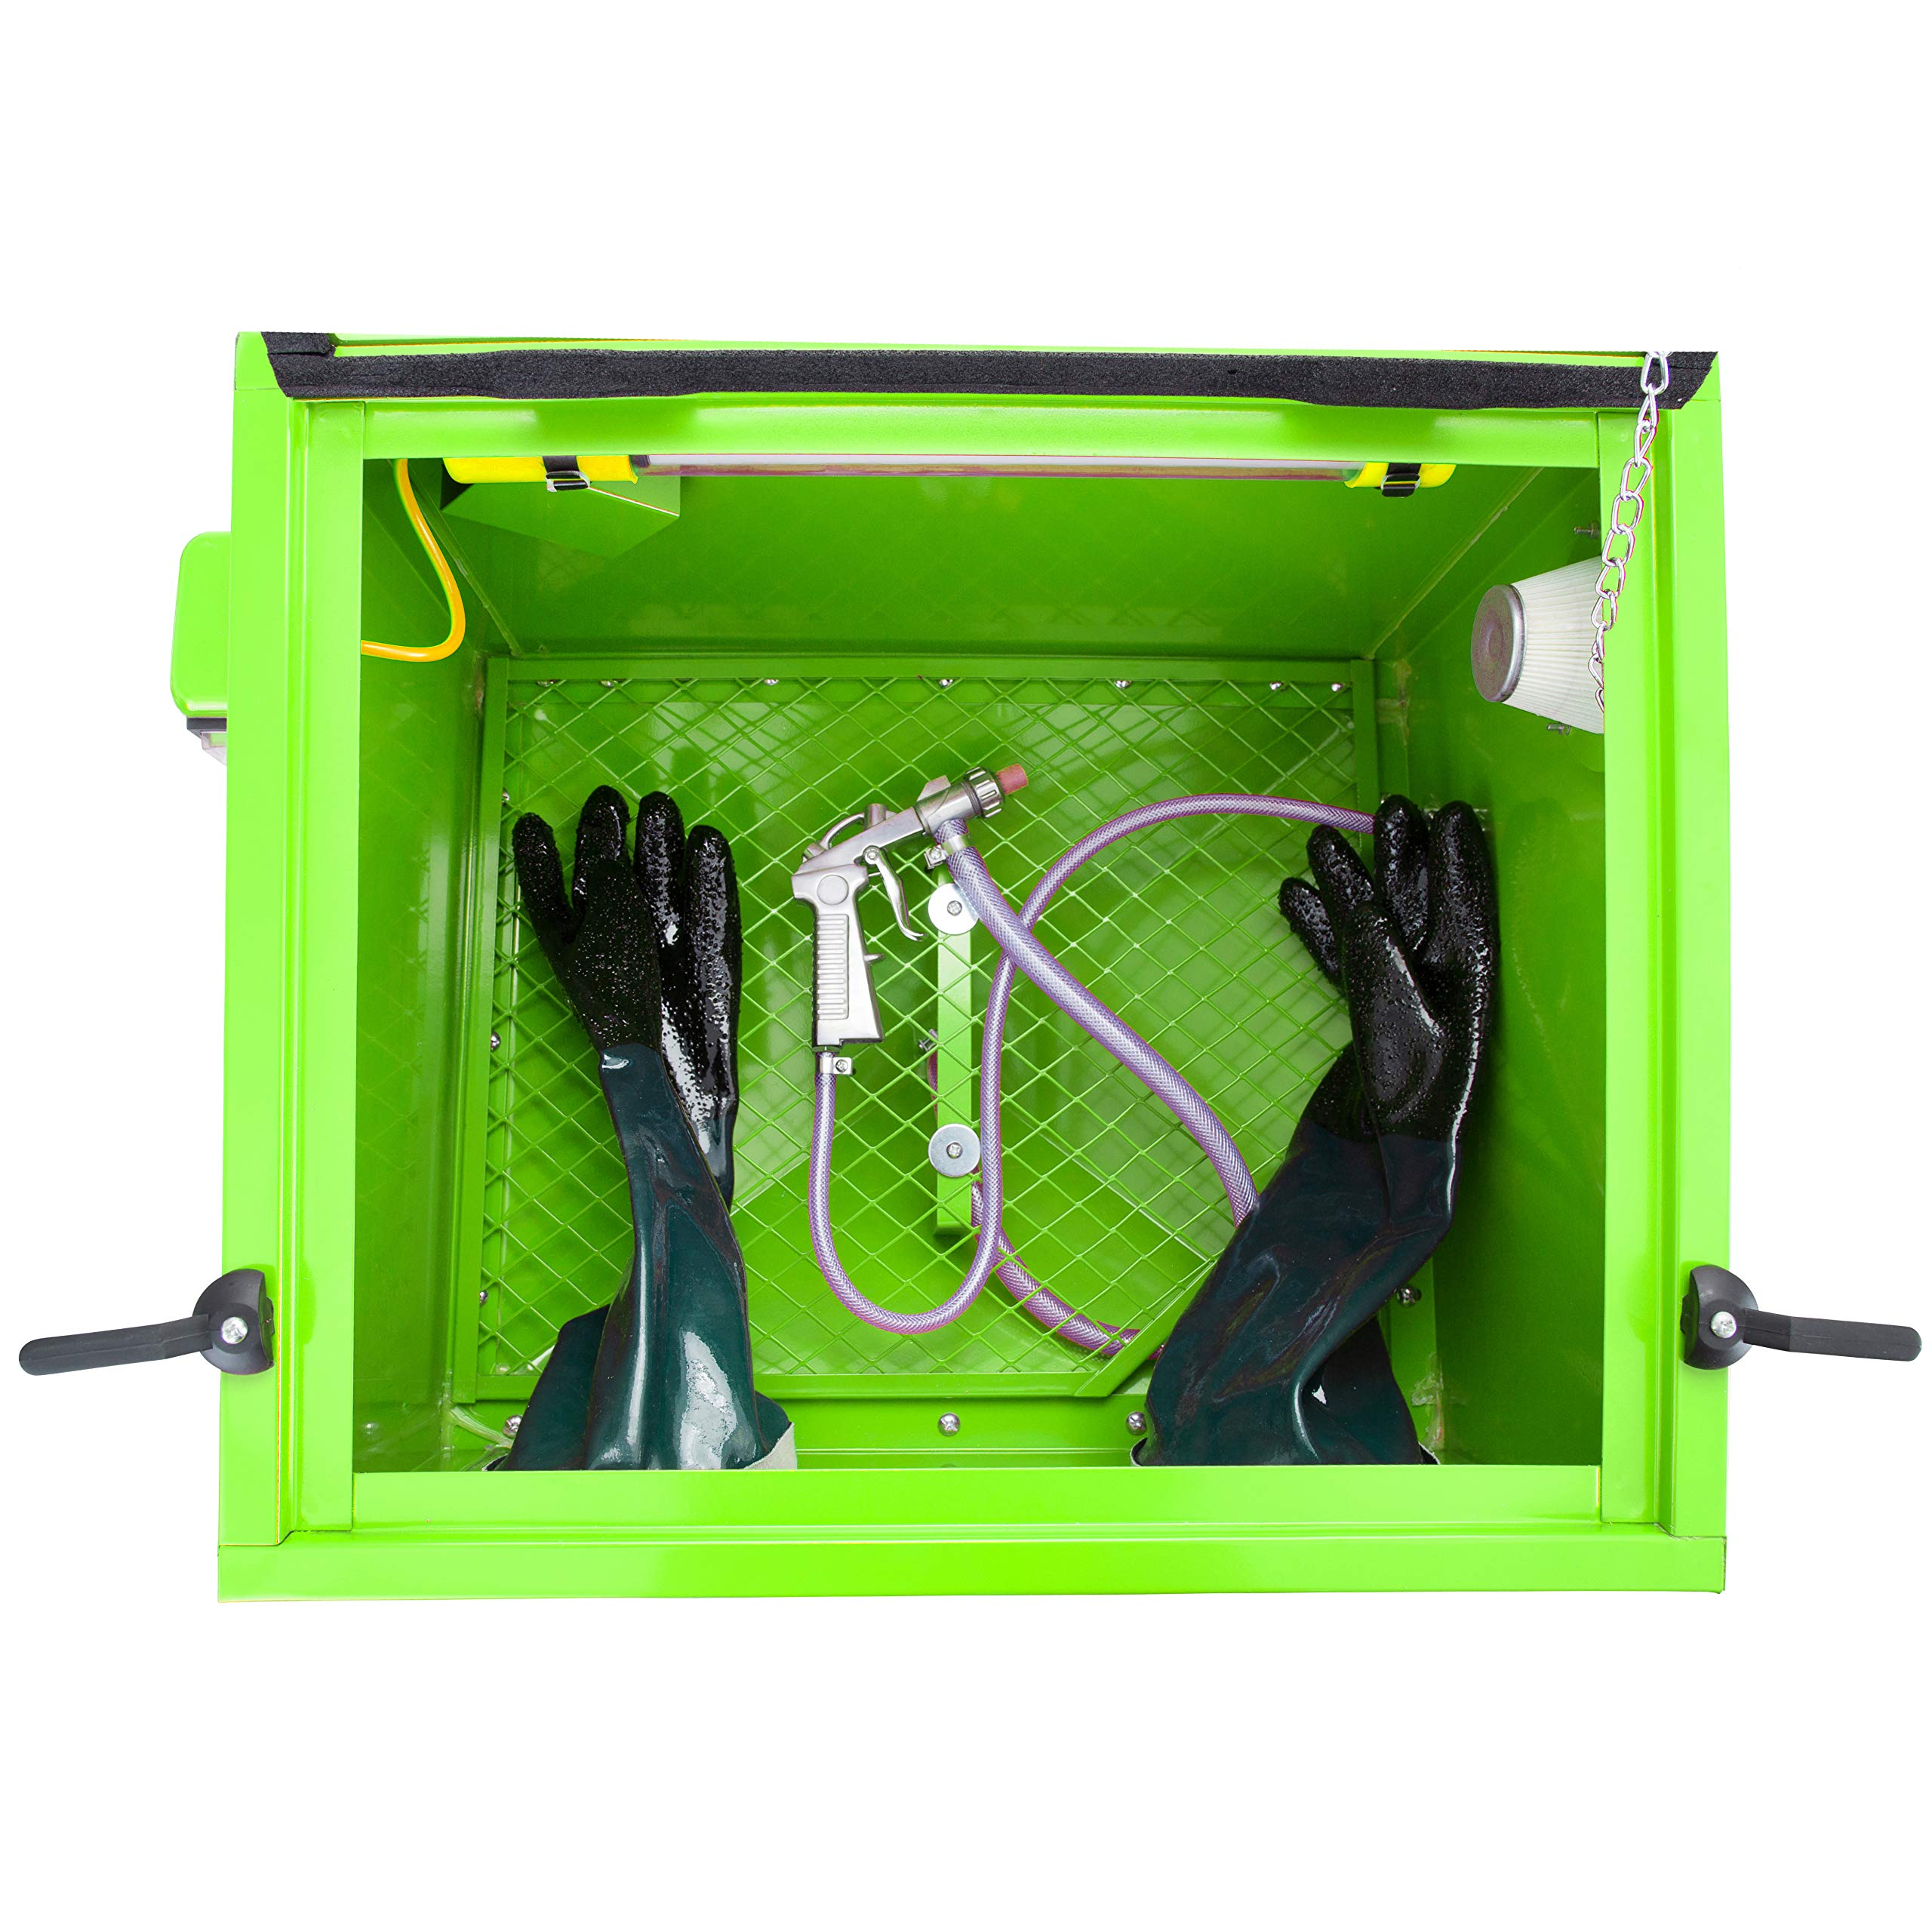 OEMTOOLS 24815 Bench Top Abrasive Blast Cabinet by OEMTOOLS (Image #2)